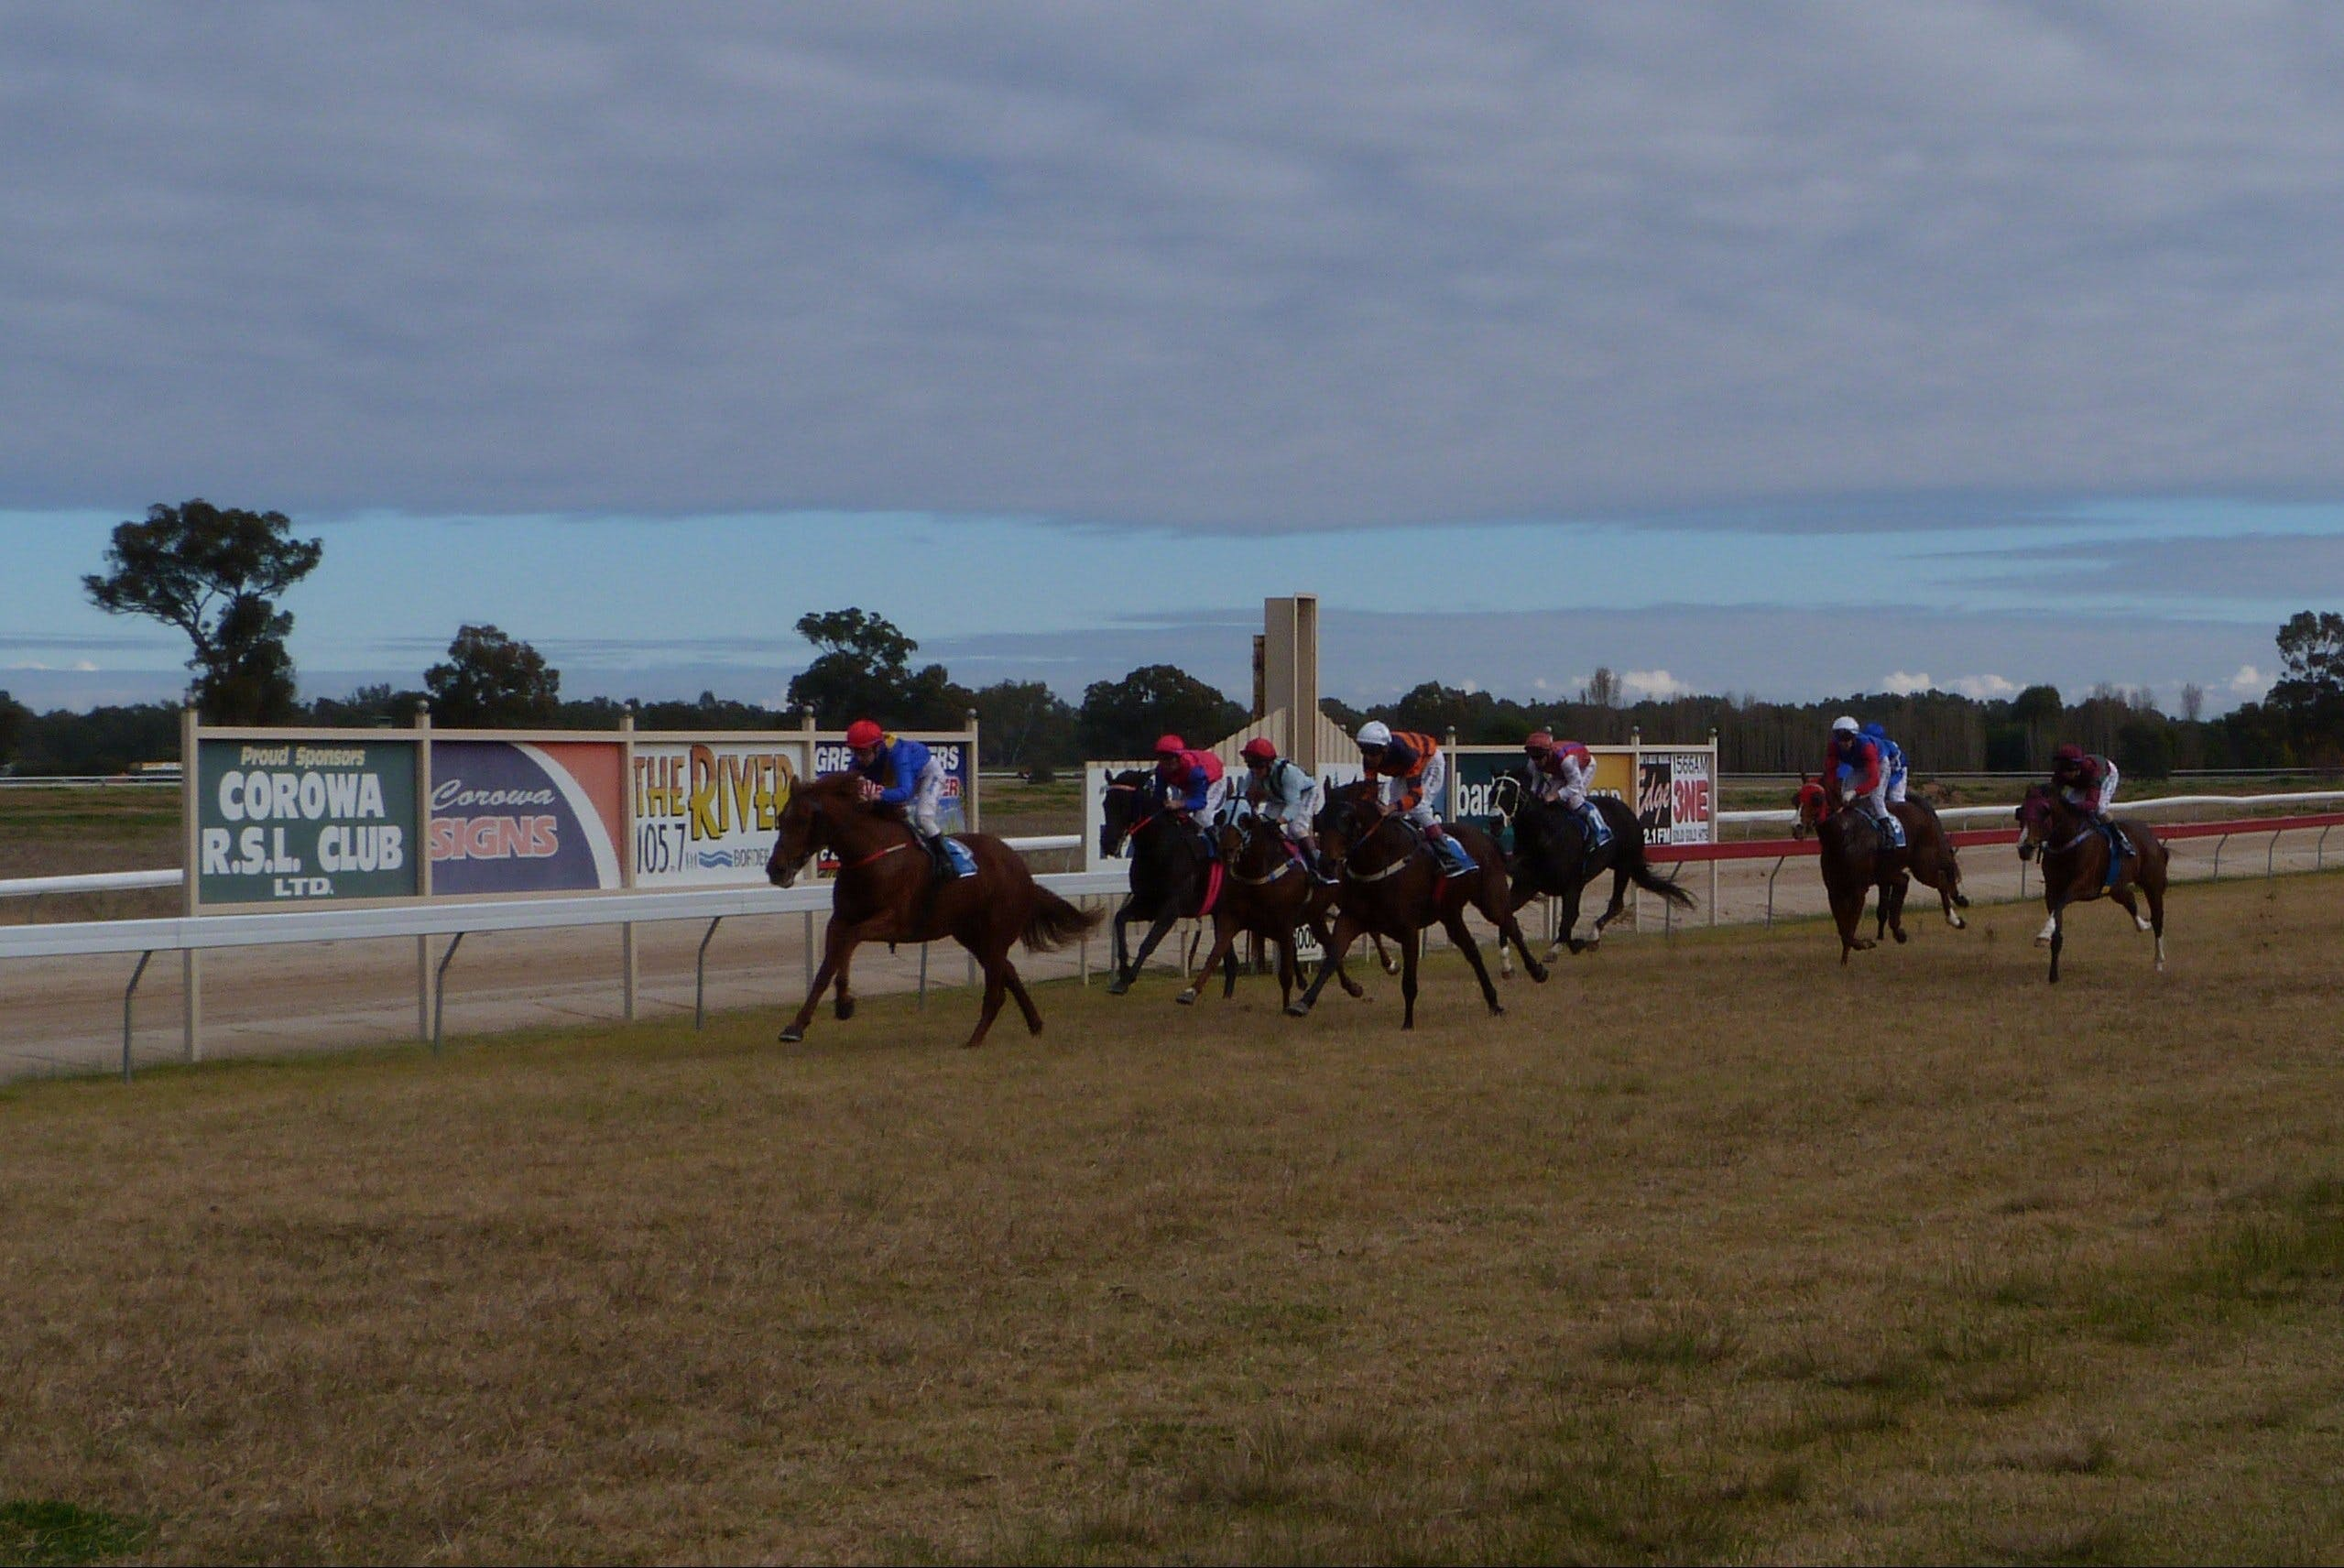 Corowa Horseraces - Pubs and Clubs